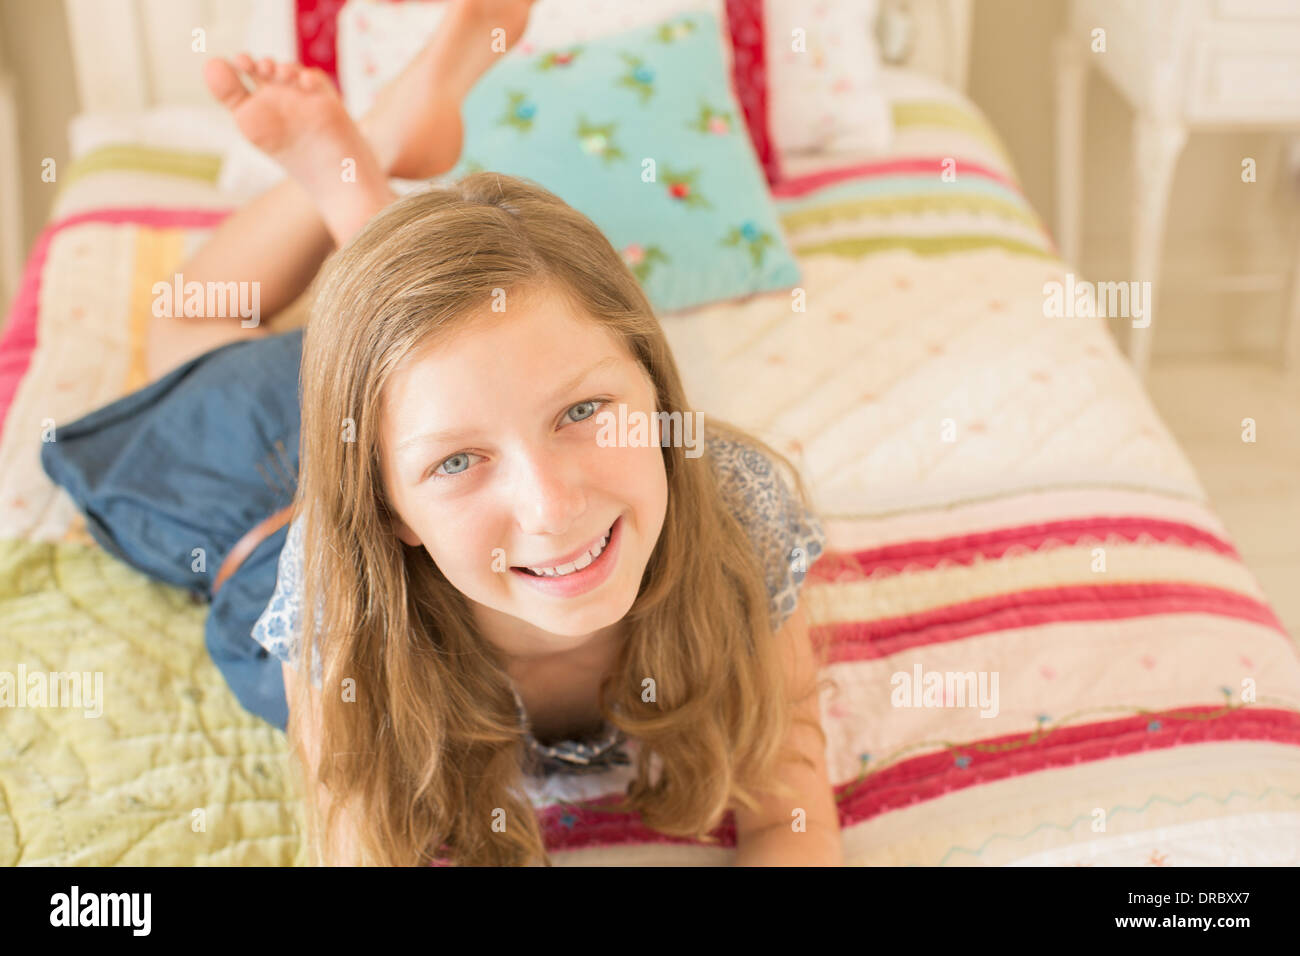 Smiling girl laying on bed - Stock Image